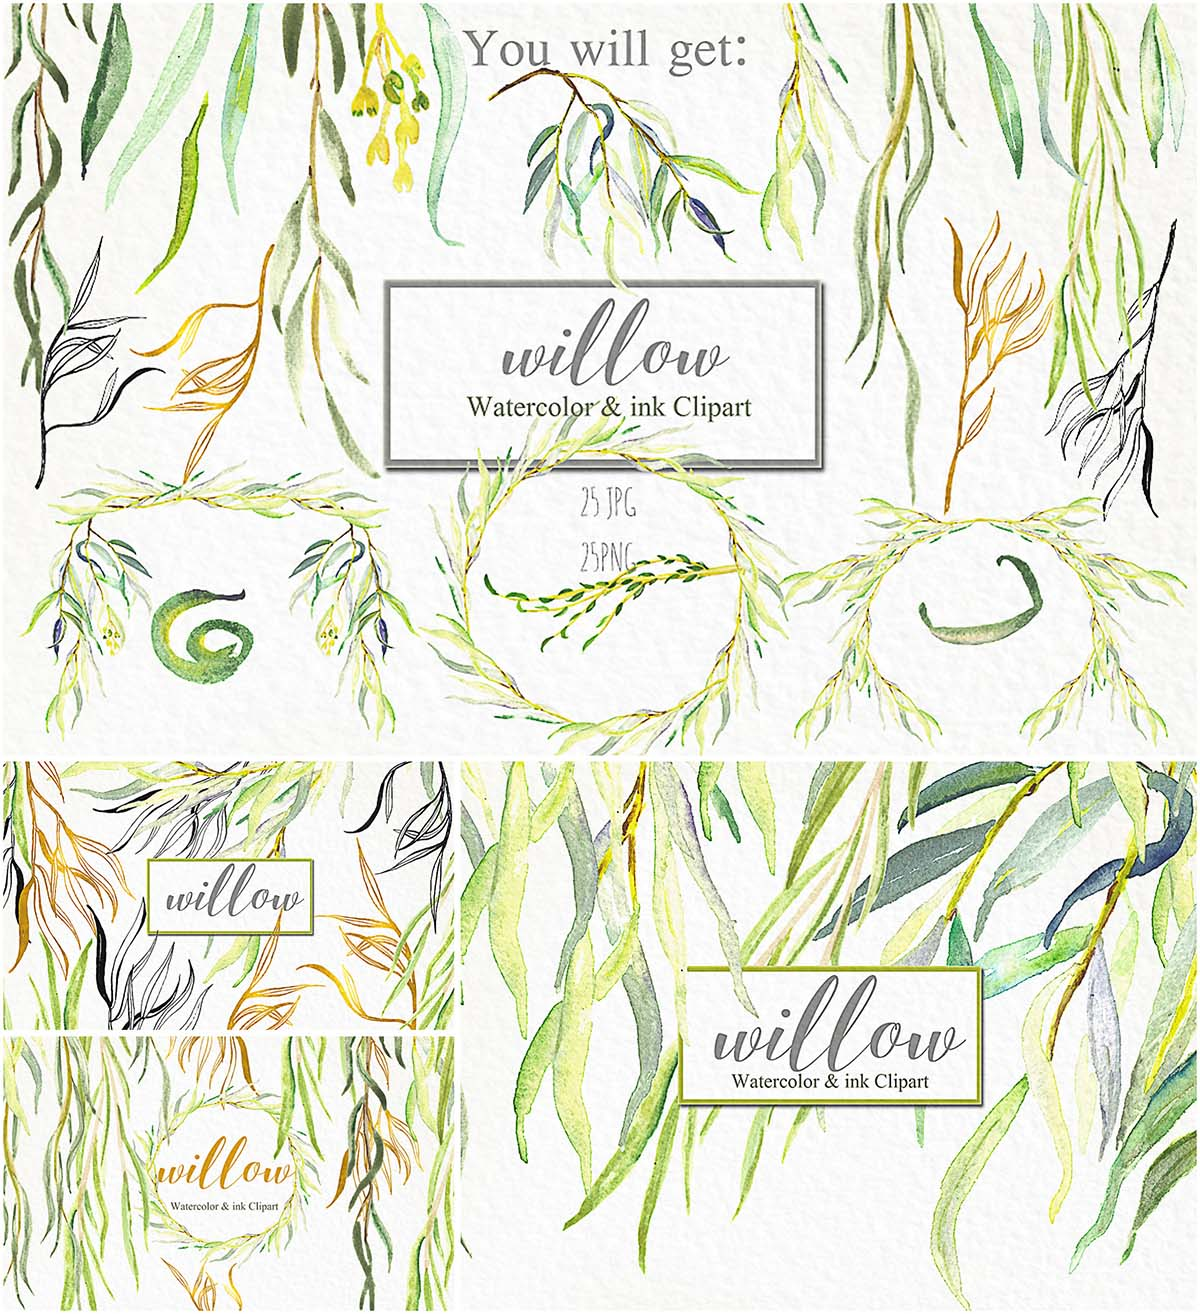 Willow watercolor branches and wreaths set